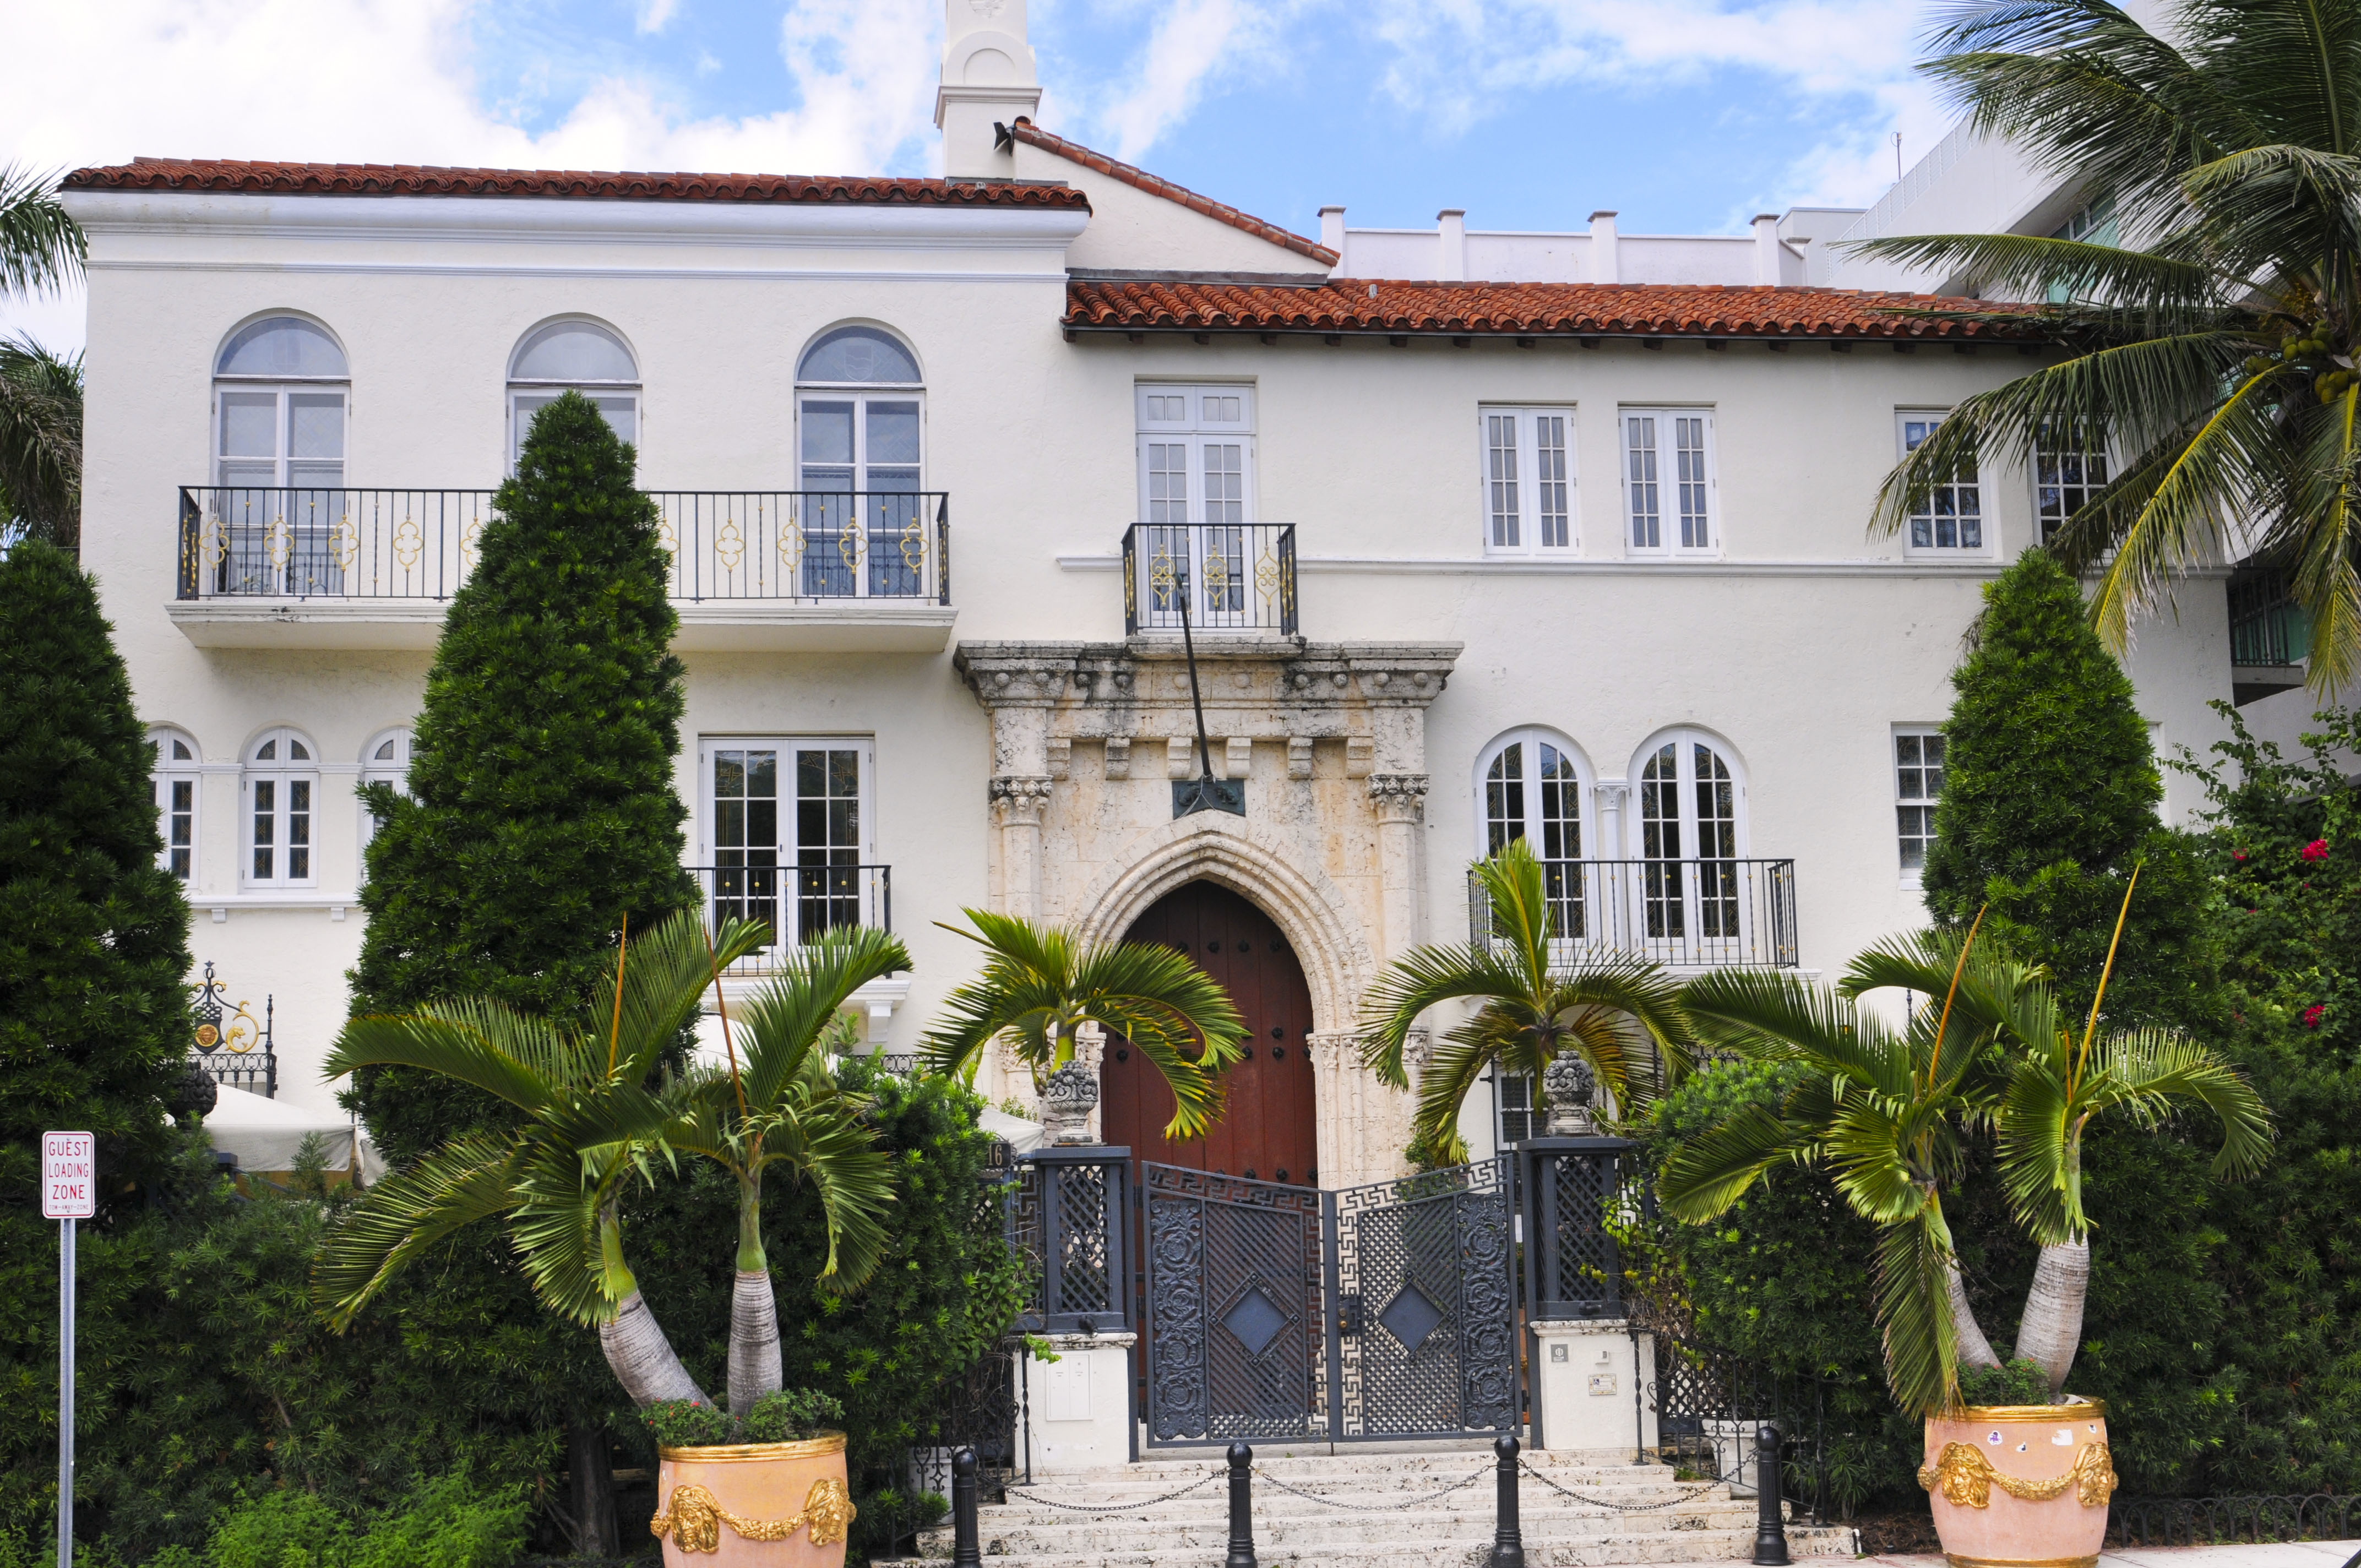 FYI: You can actually book a stay at Gianni Versace's mansion in Miami